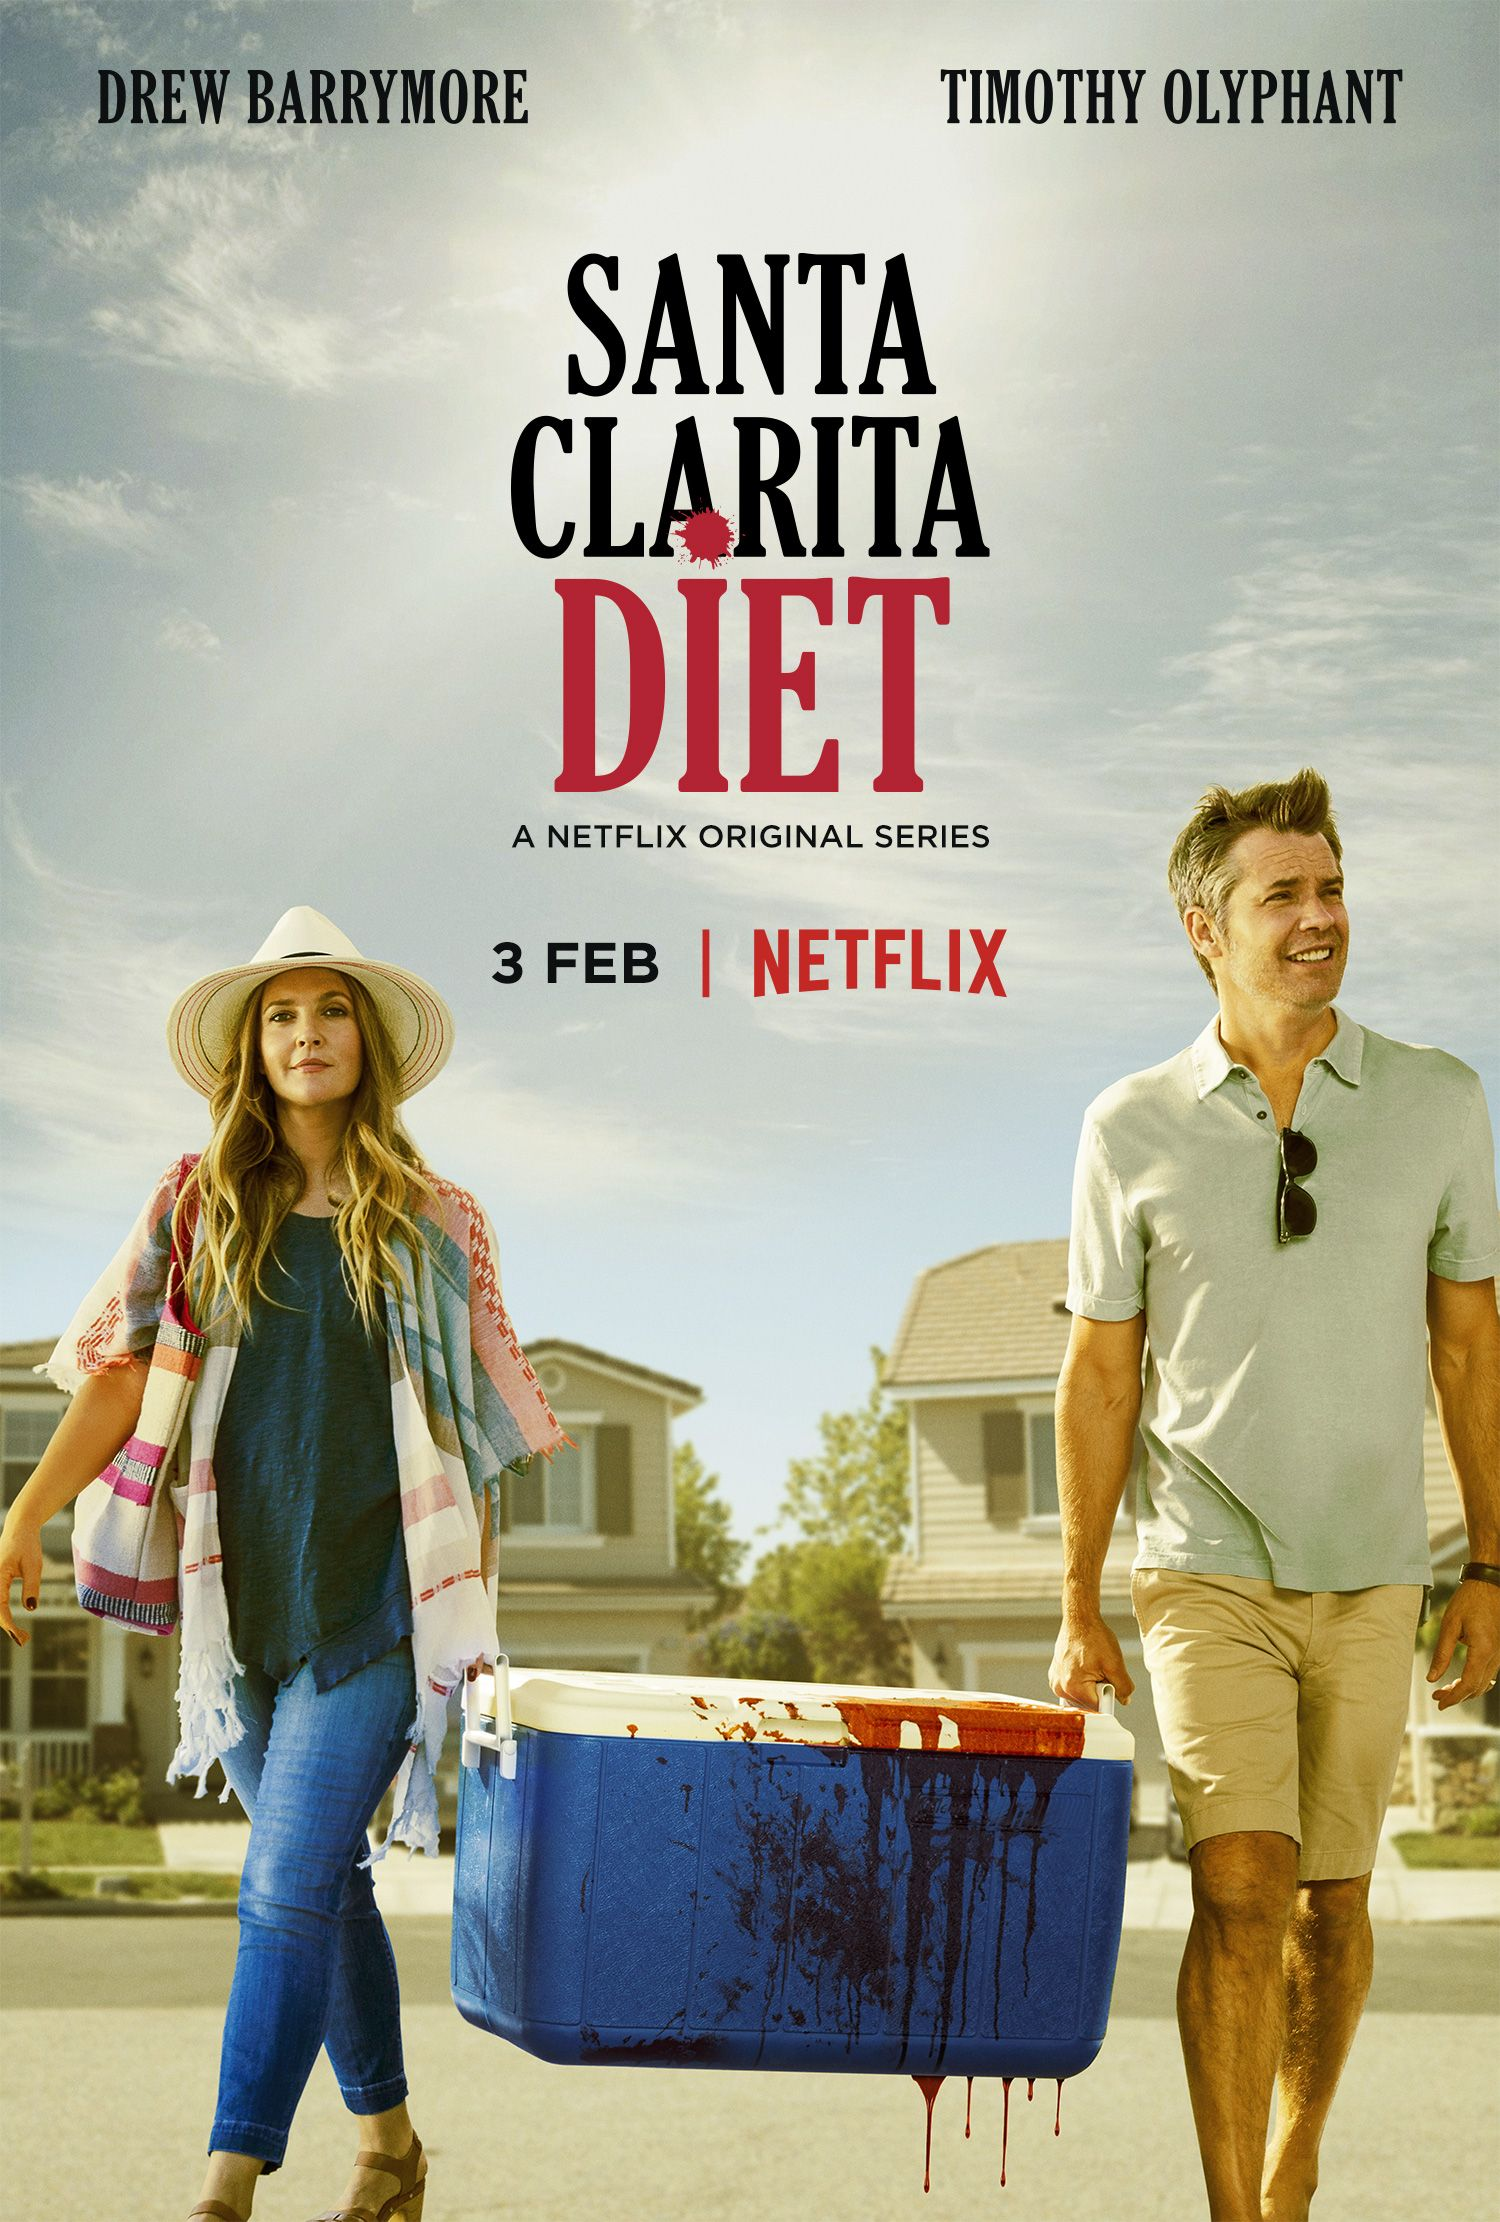 Presumed Innocent Trailer Watch A New Trailer For Netflix's Santa Clarita Diet  Live For .